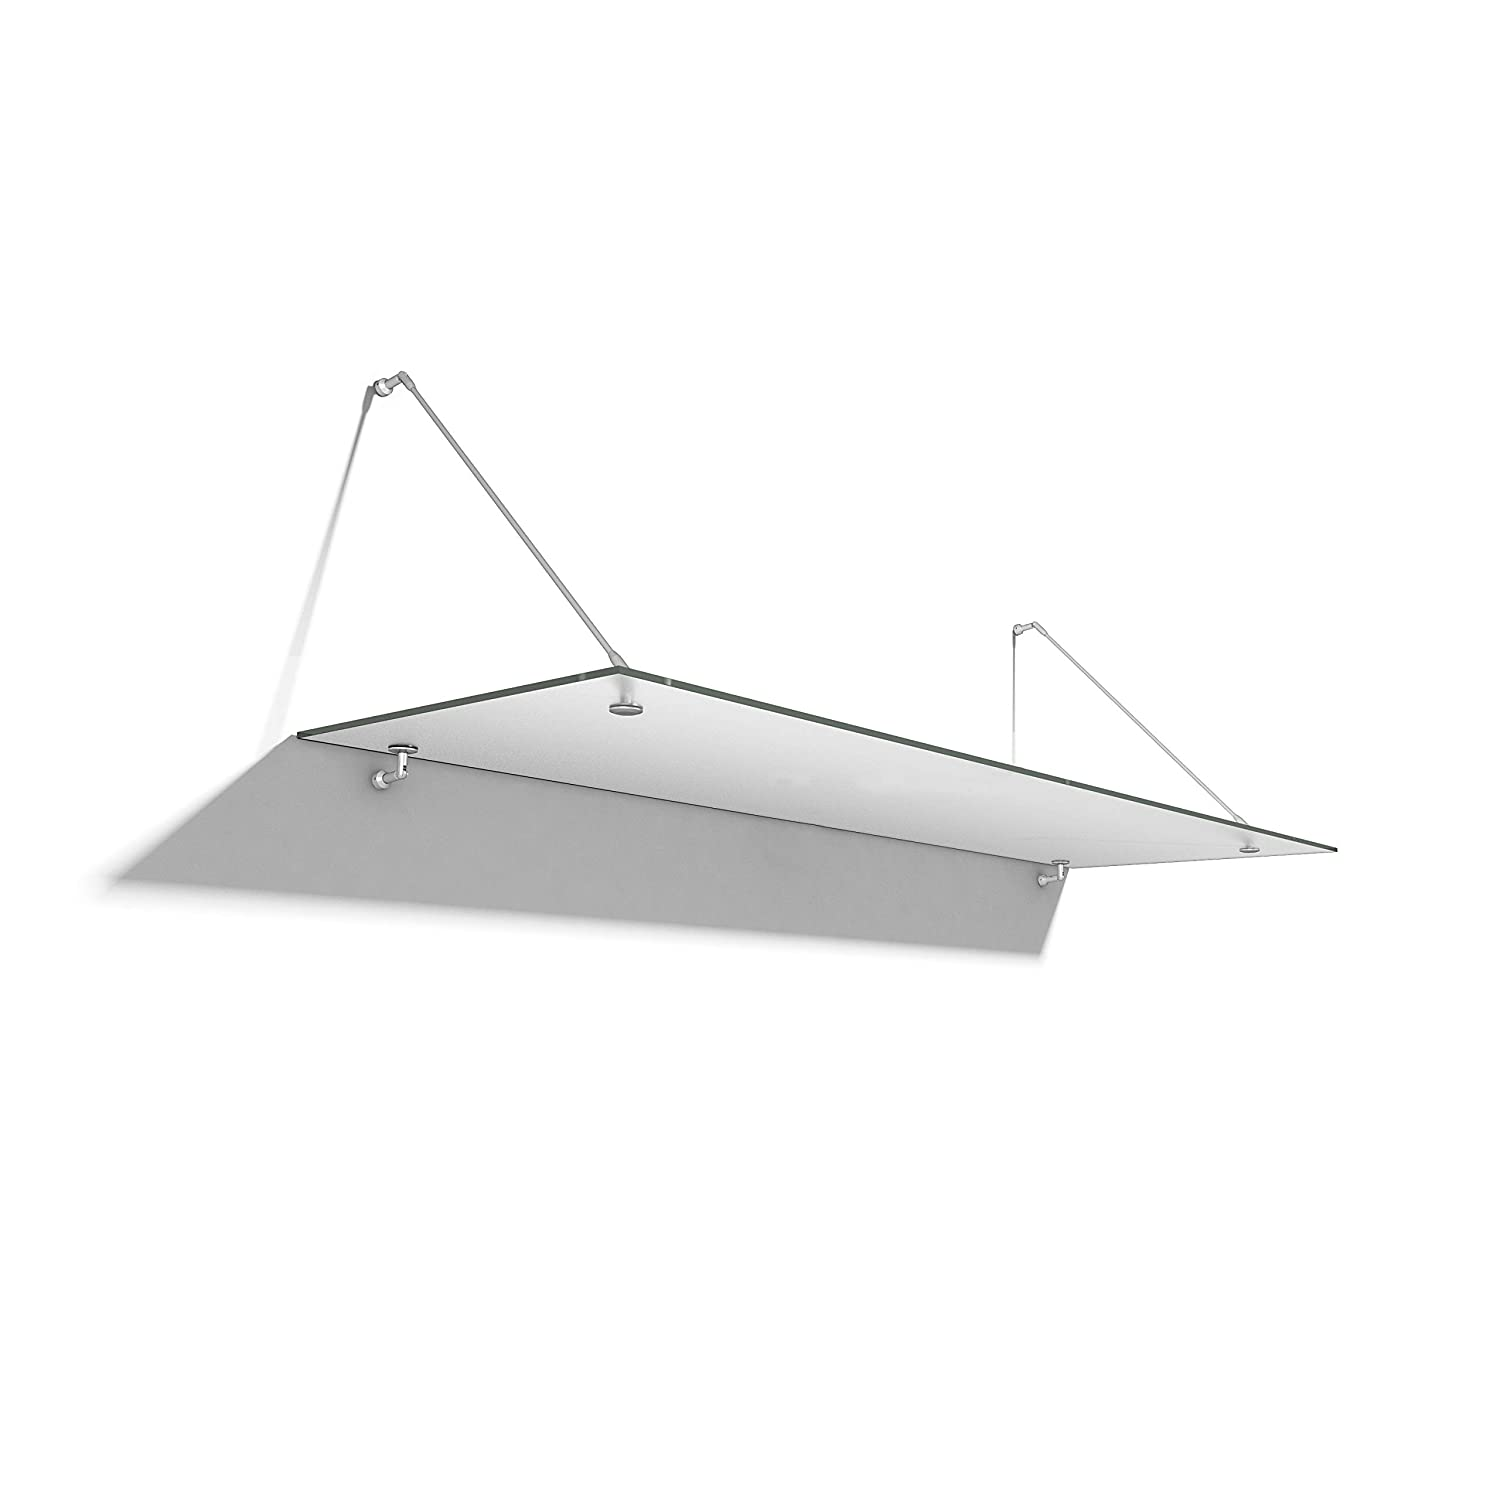 P501 Rafter Glazing Bar System Suitable for Both Polycarbonate and Glass 4000mm, White